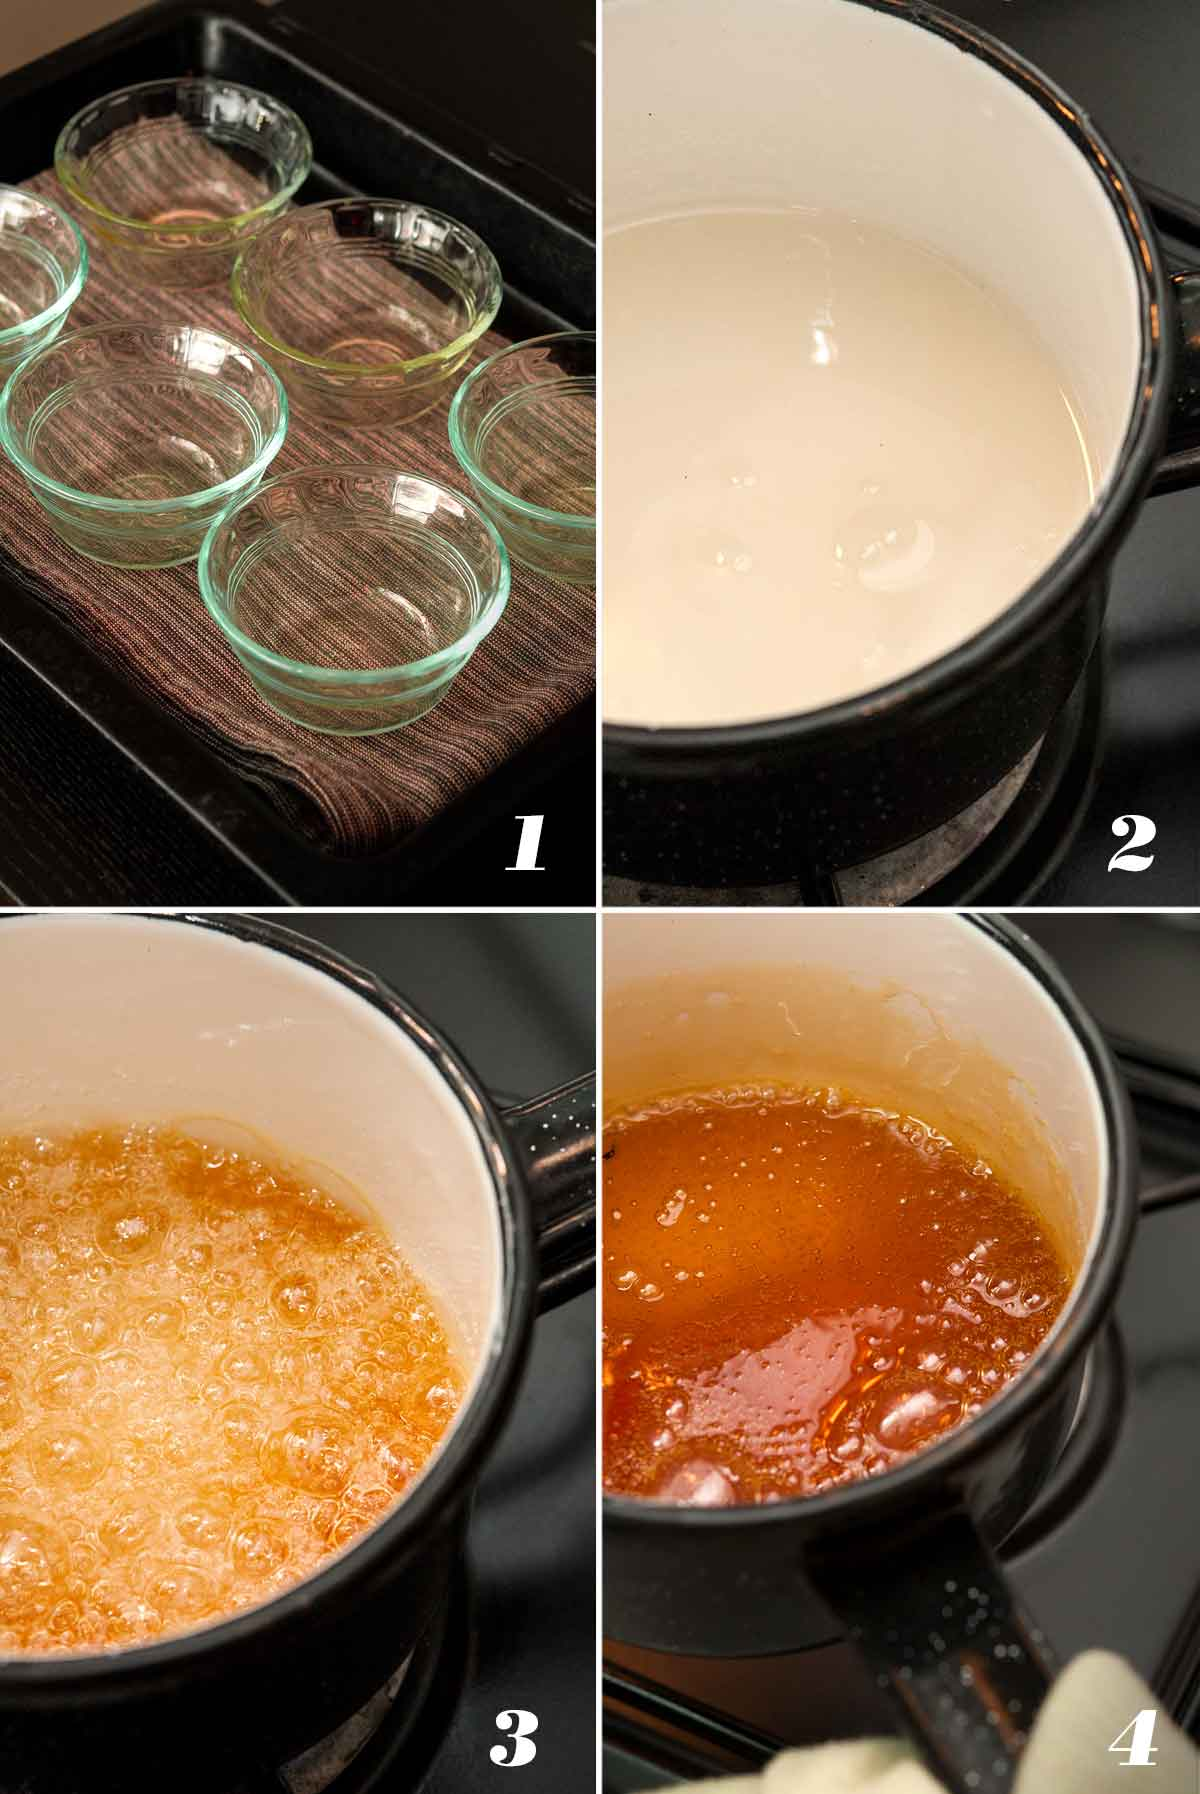 A collage of 4 numbered images showing how to make caramel.